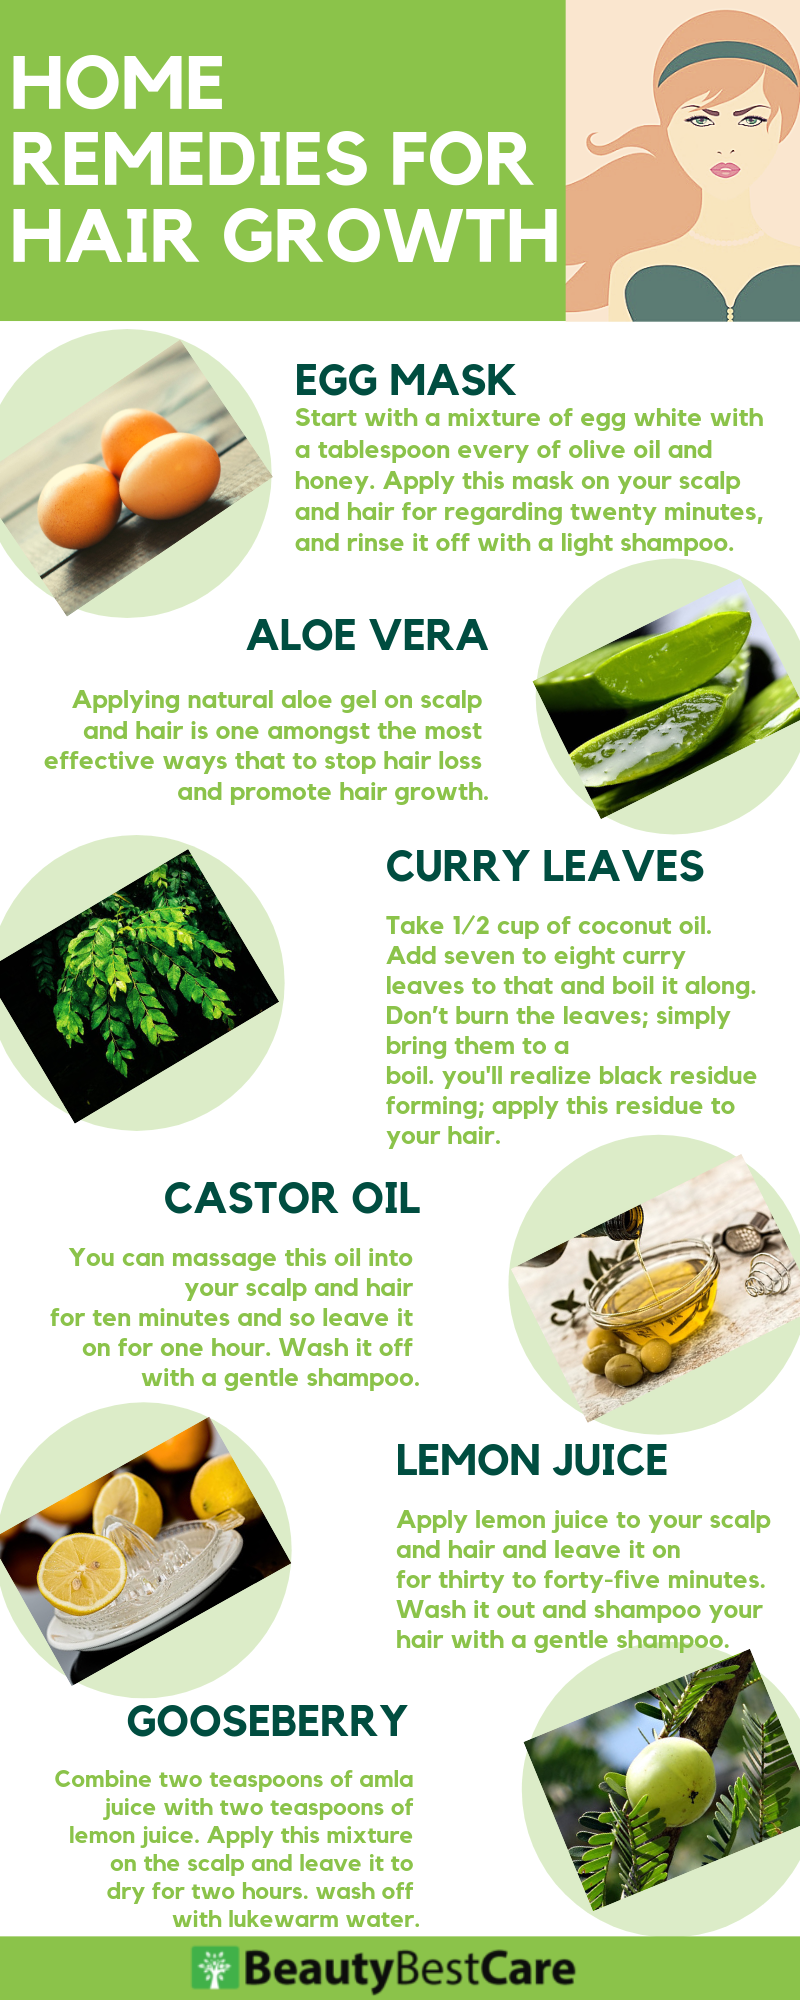 Natural Home Remedies For Hair Growth And Thickness That Works